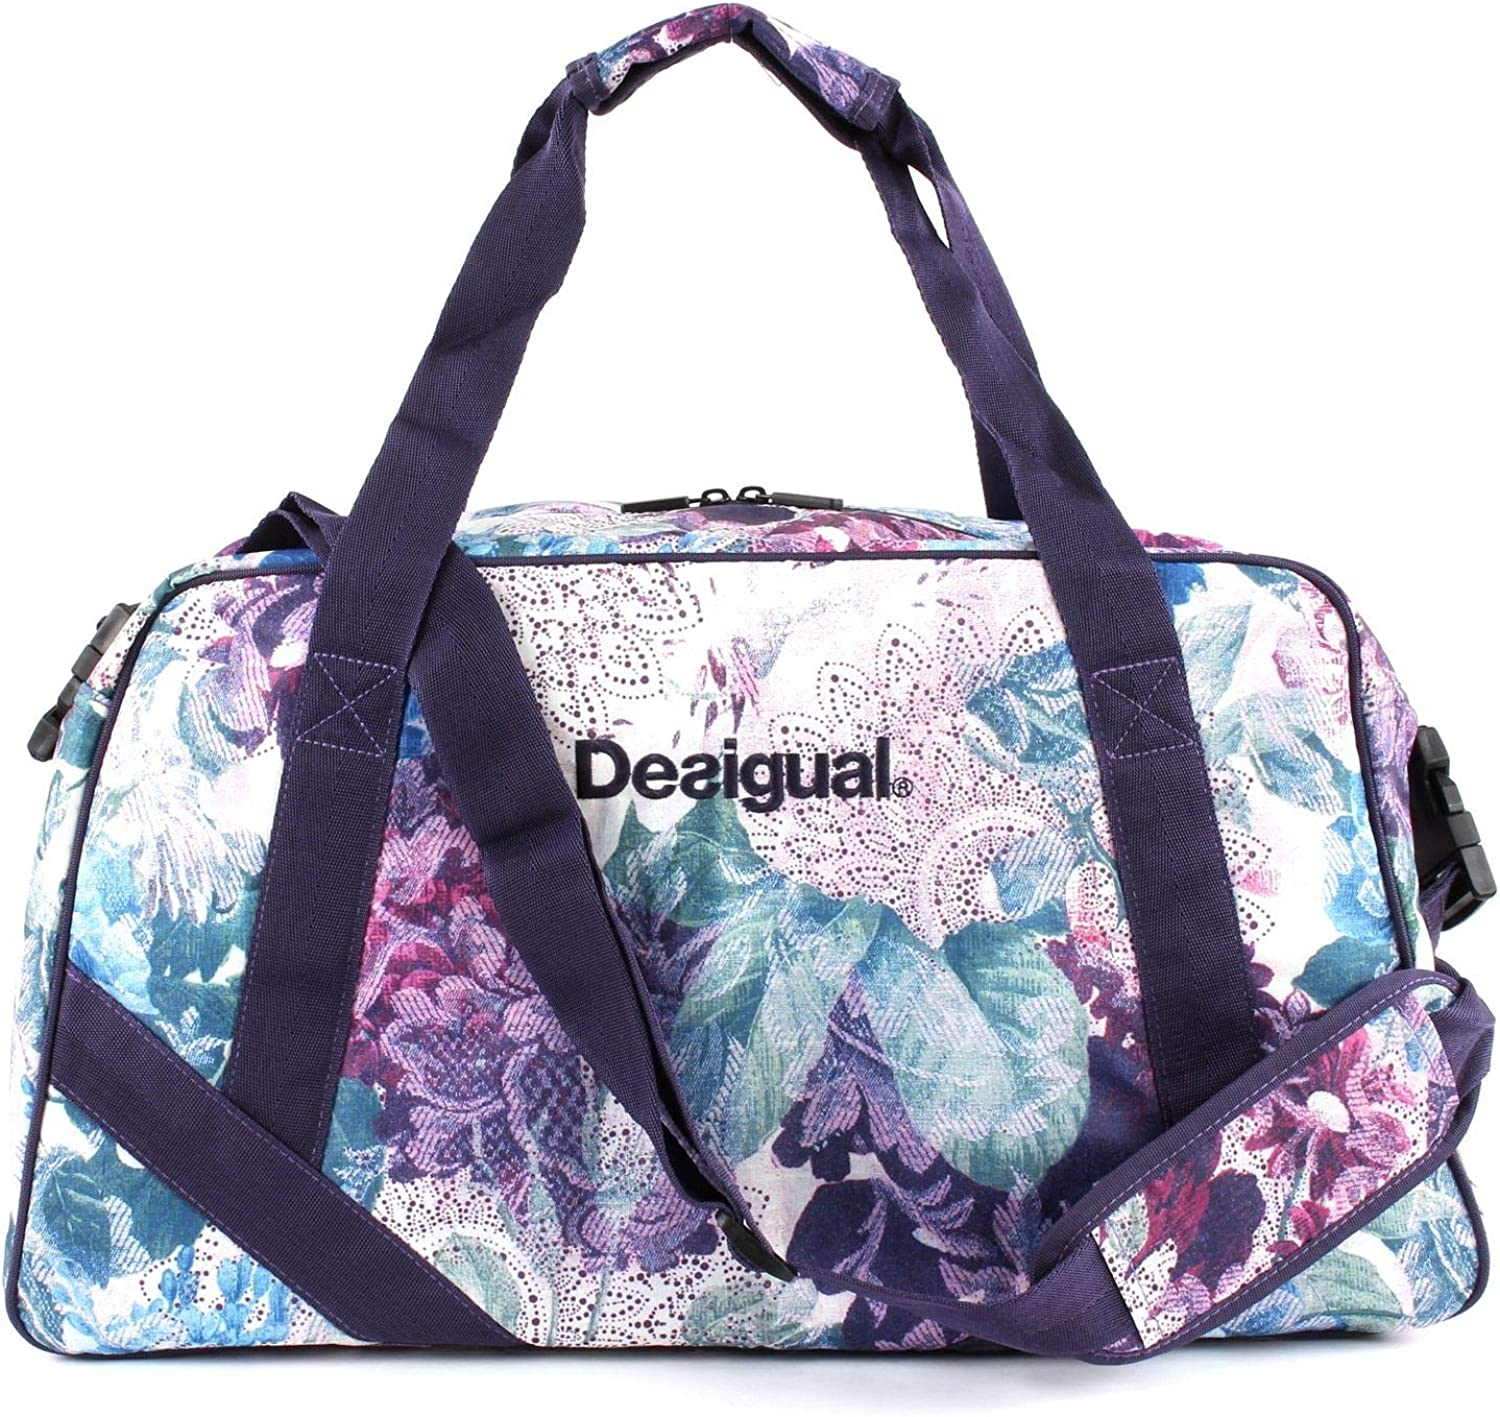 sac desigual transparent luminescent